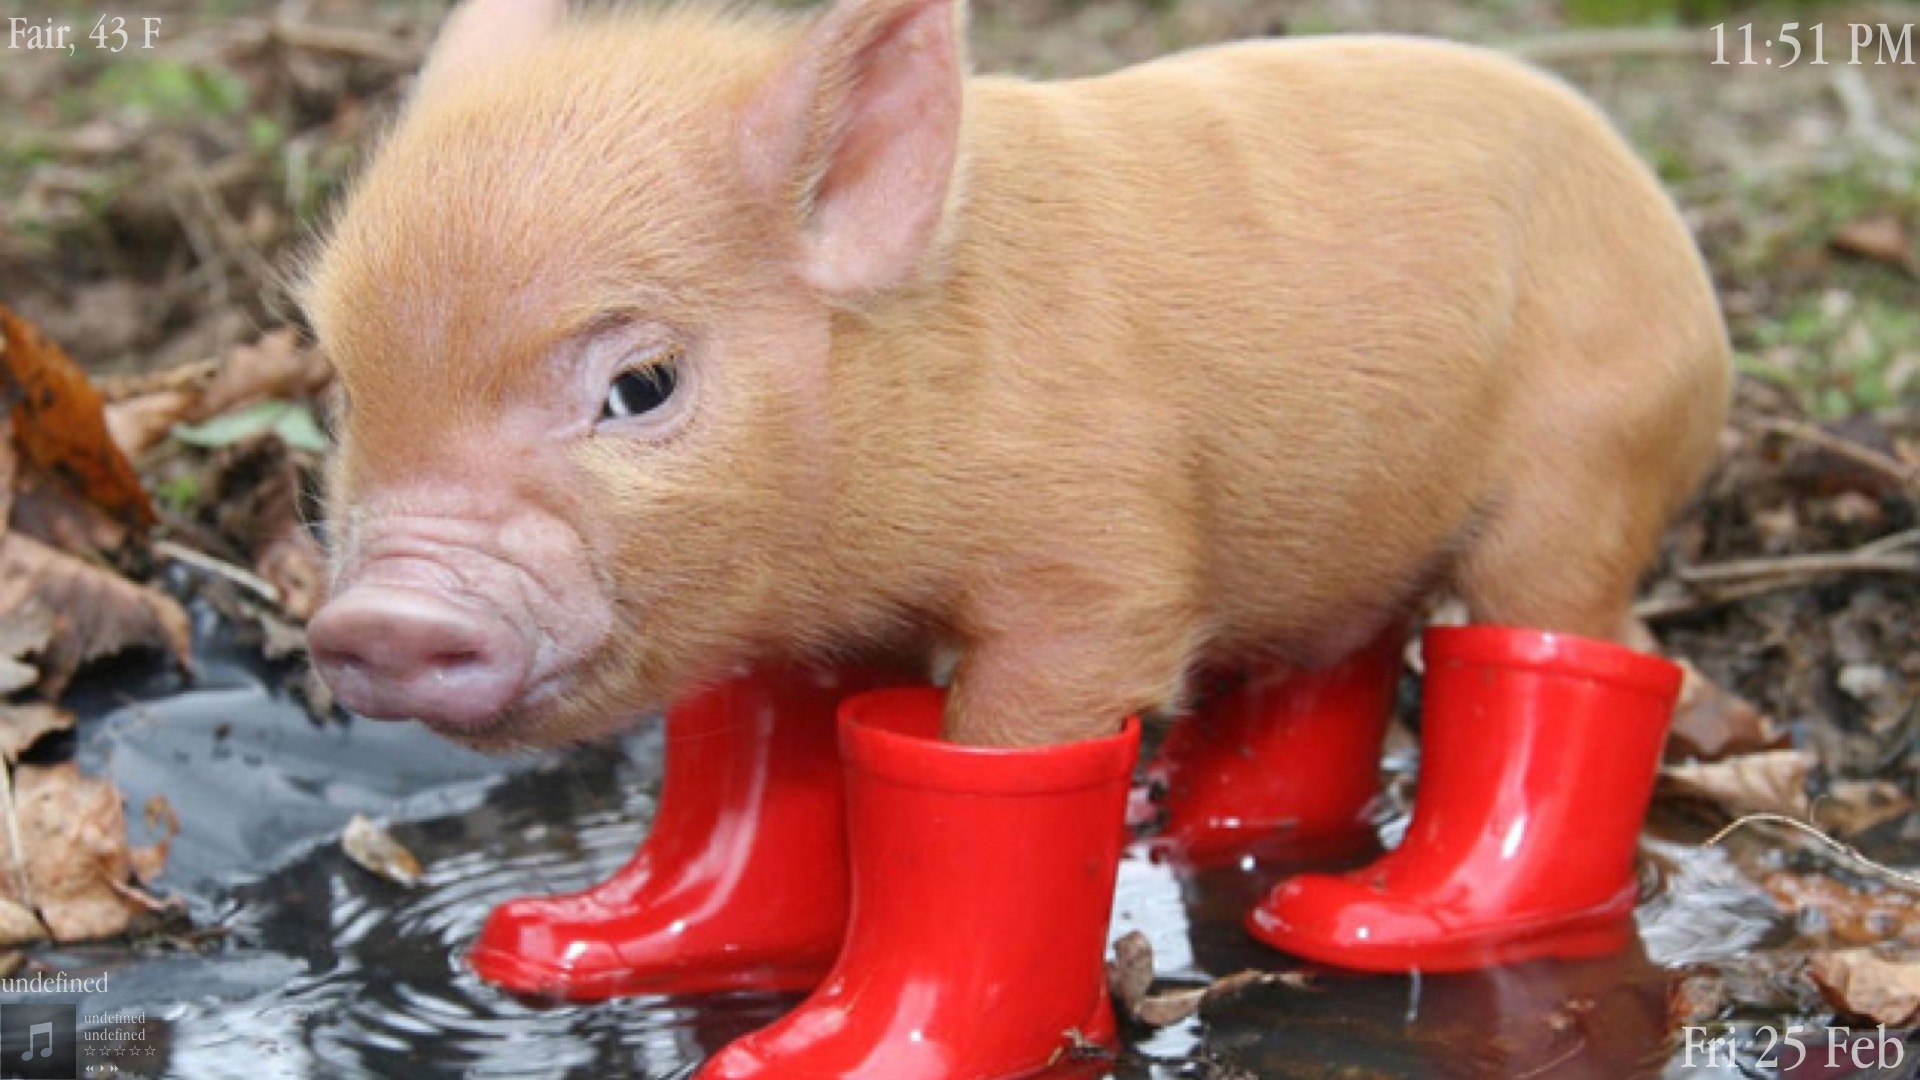 Animals   Pigs   Pig in boots 042780 jpg 1920x1080